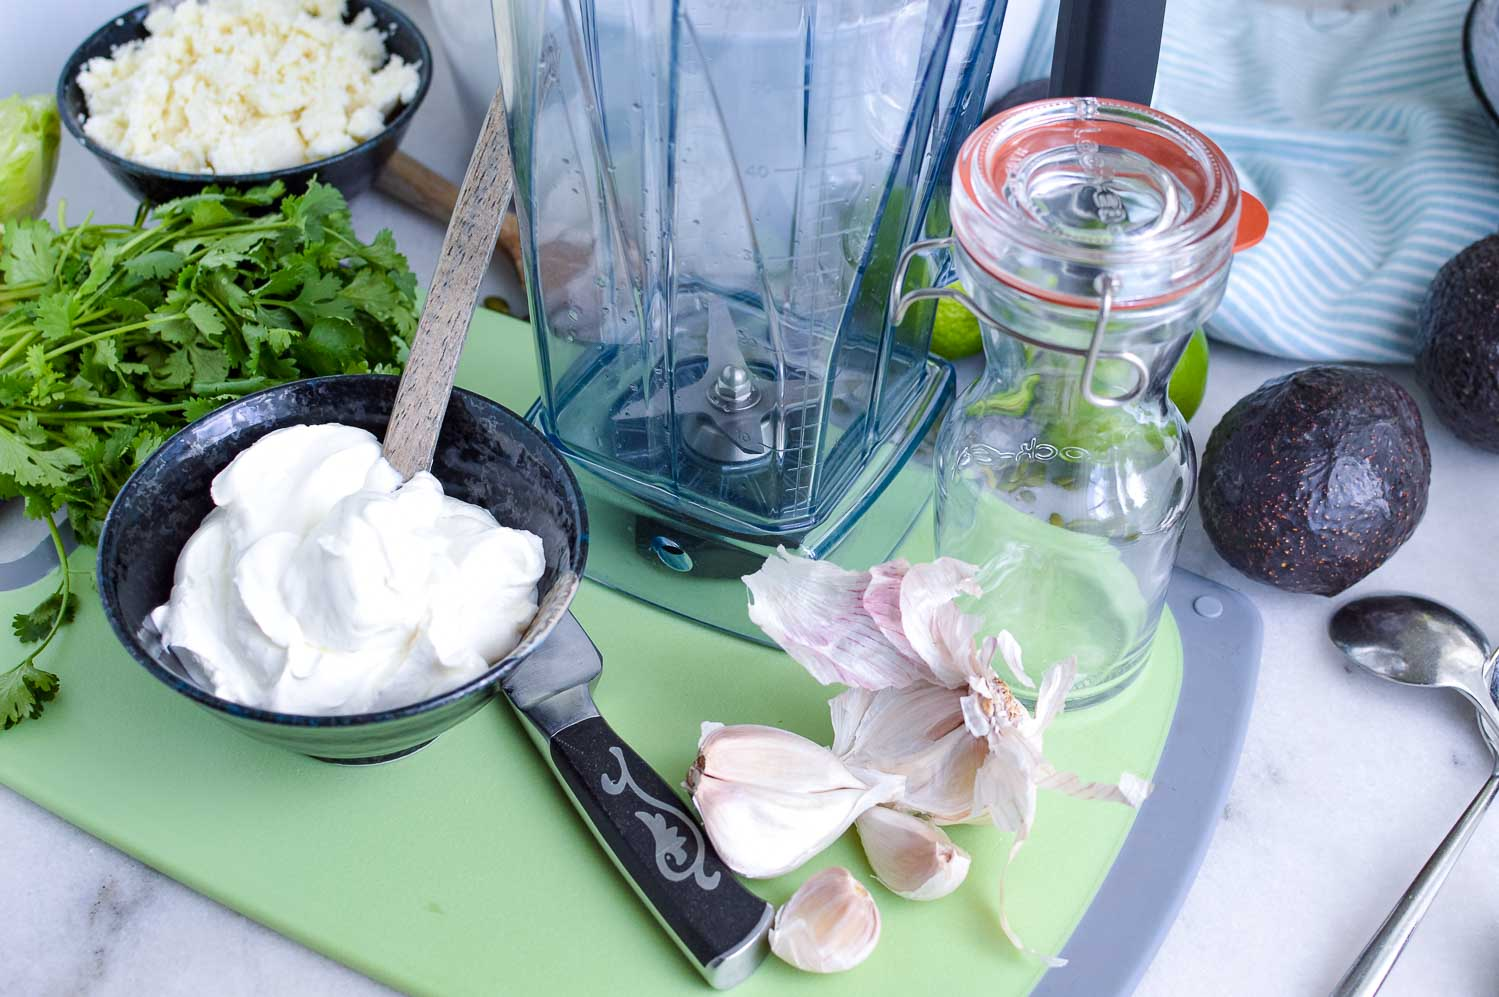 A blender and jar empty with ingredients on the green cutting board: sour cream. cilantro, cheese, garlic, lime, avocados with a knife on the side.